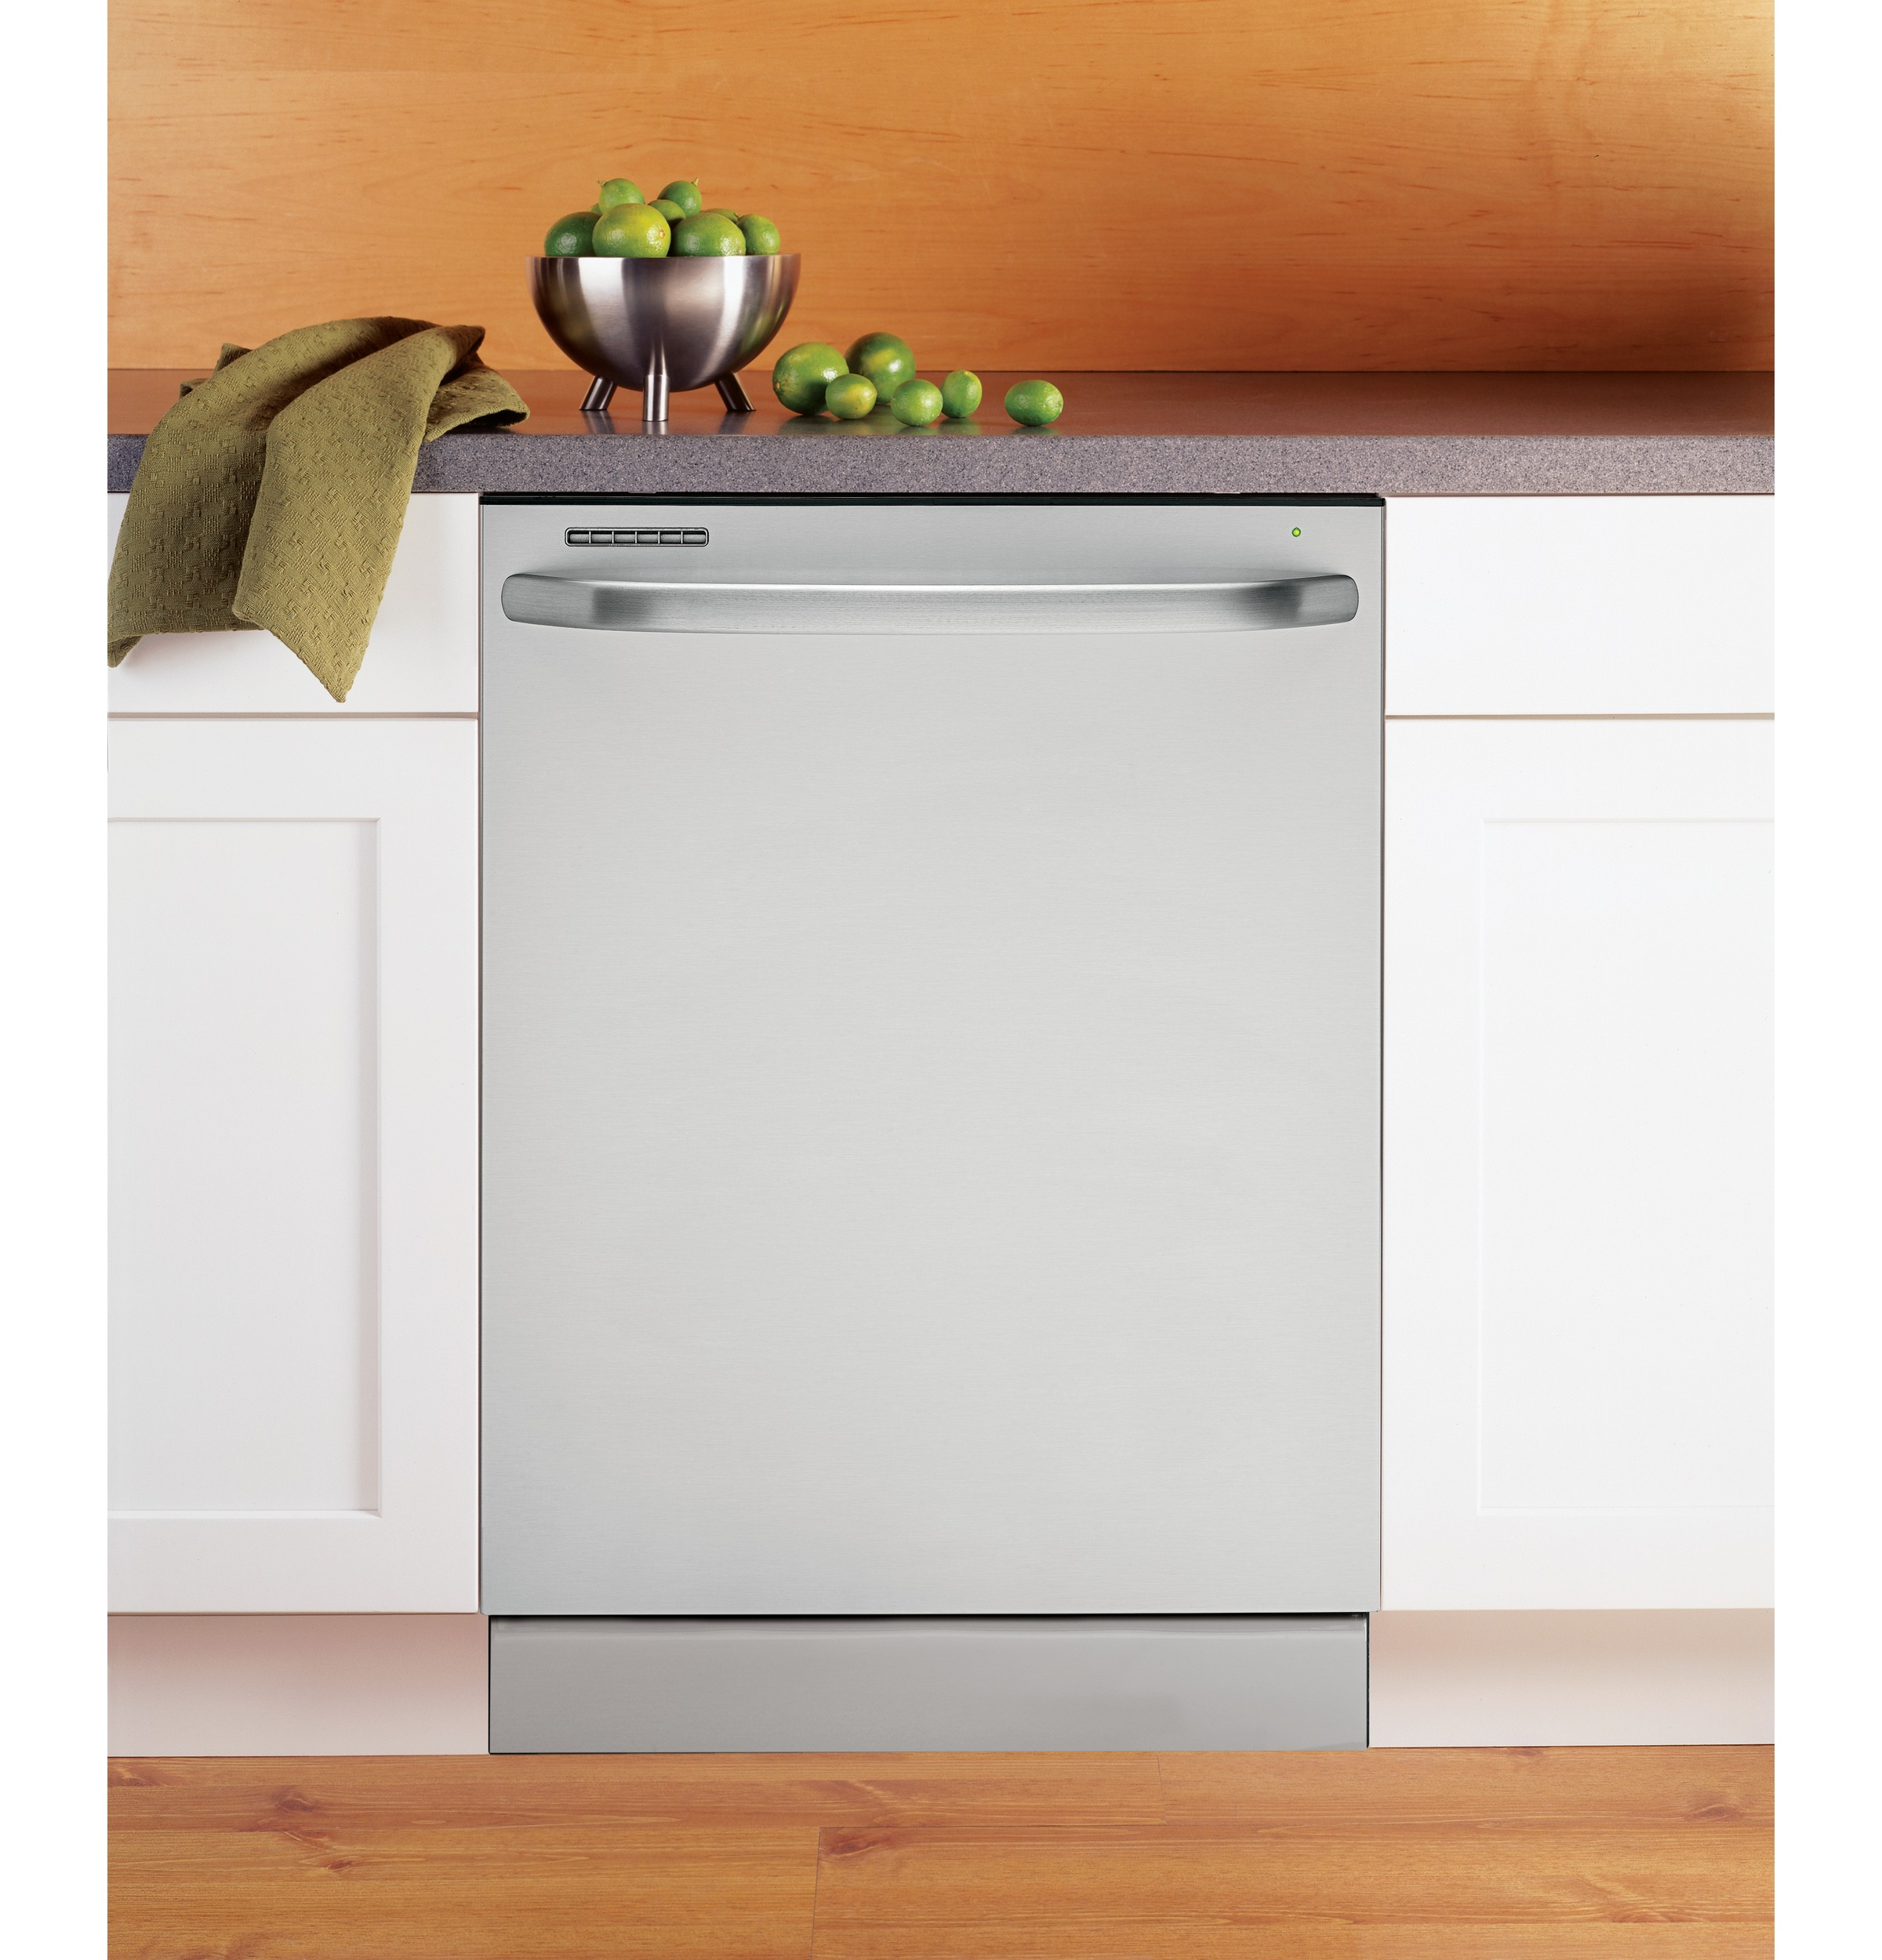 ge dishwasher model gdwt368vss manual